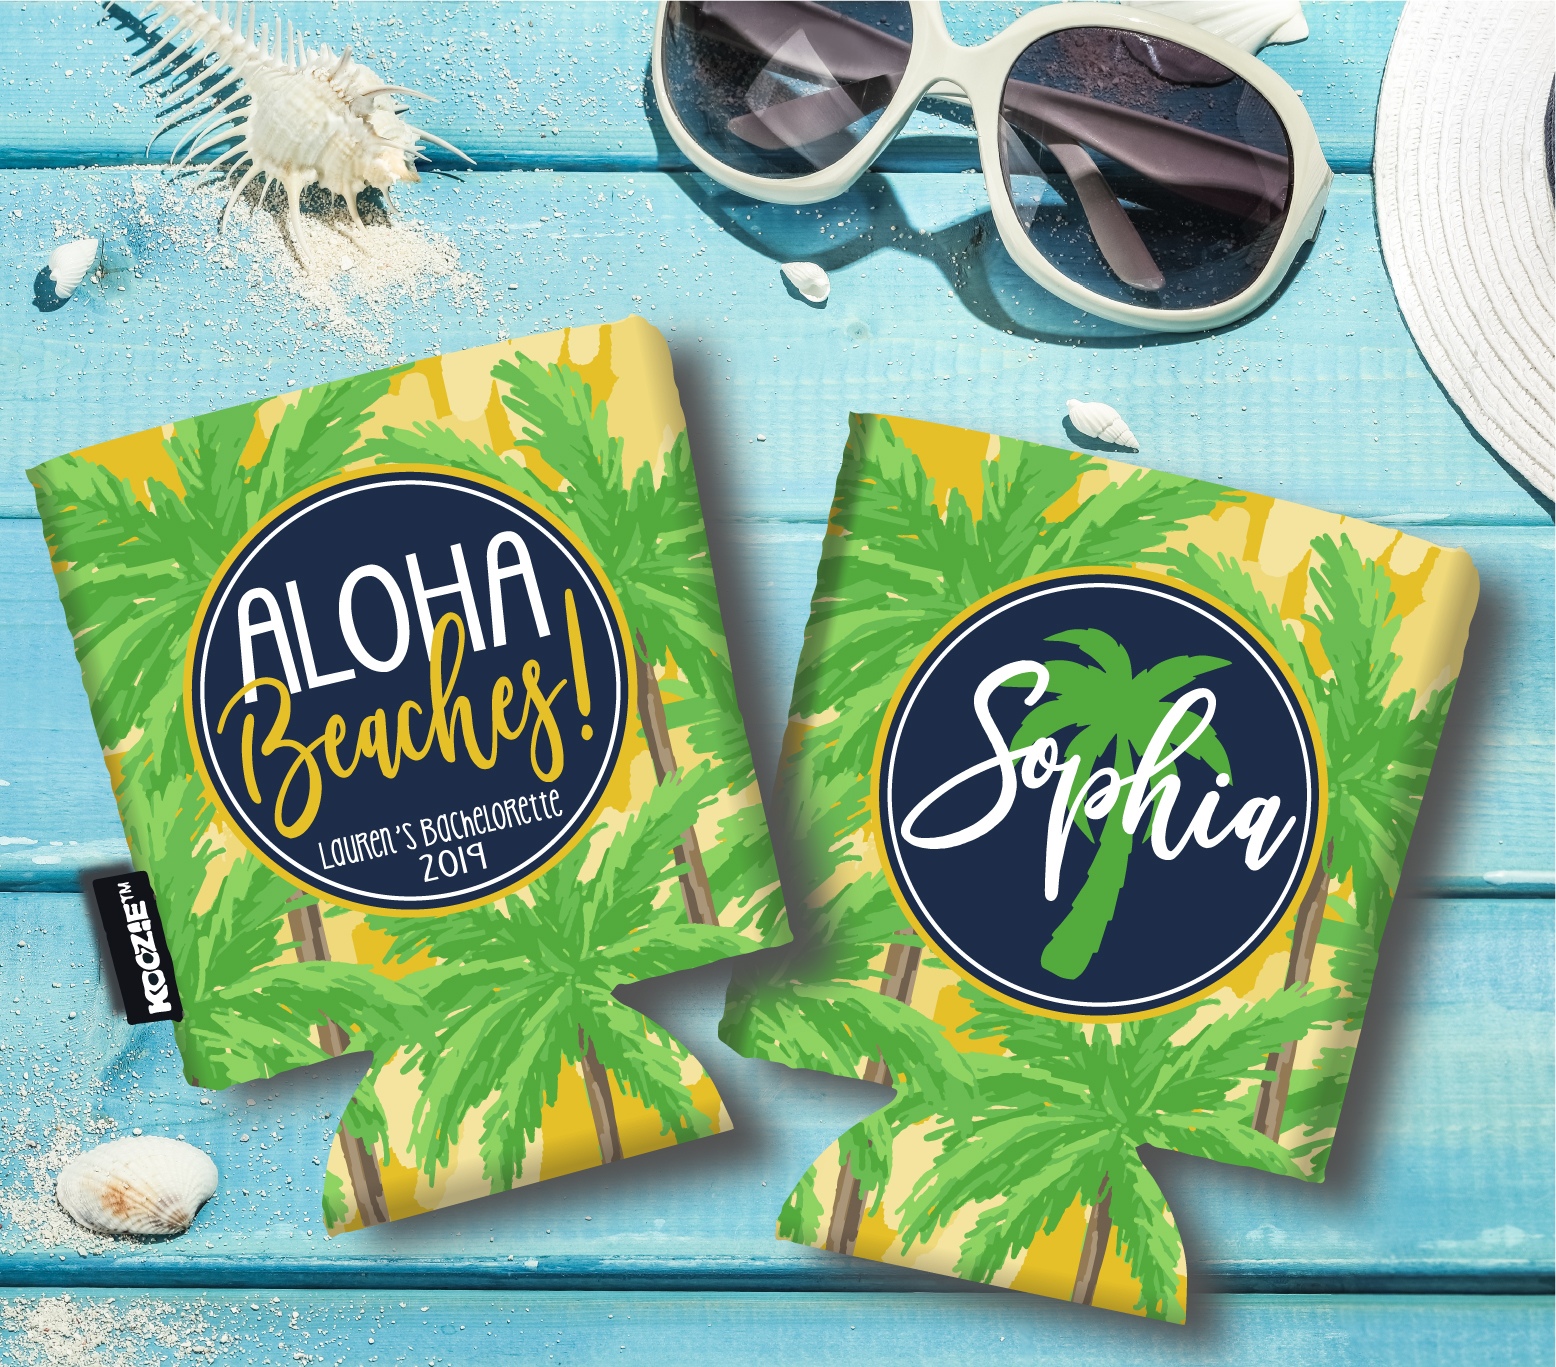 Beach Vacation KOOZIES® or Neoprene can coolers - Yellow Palm Trees - Aloha Beaches - Bachelorette Koozies